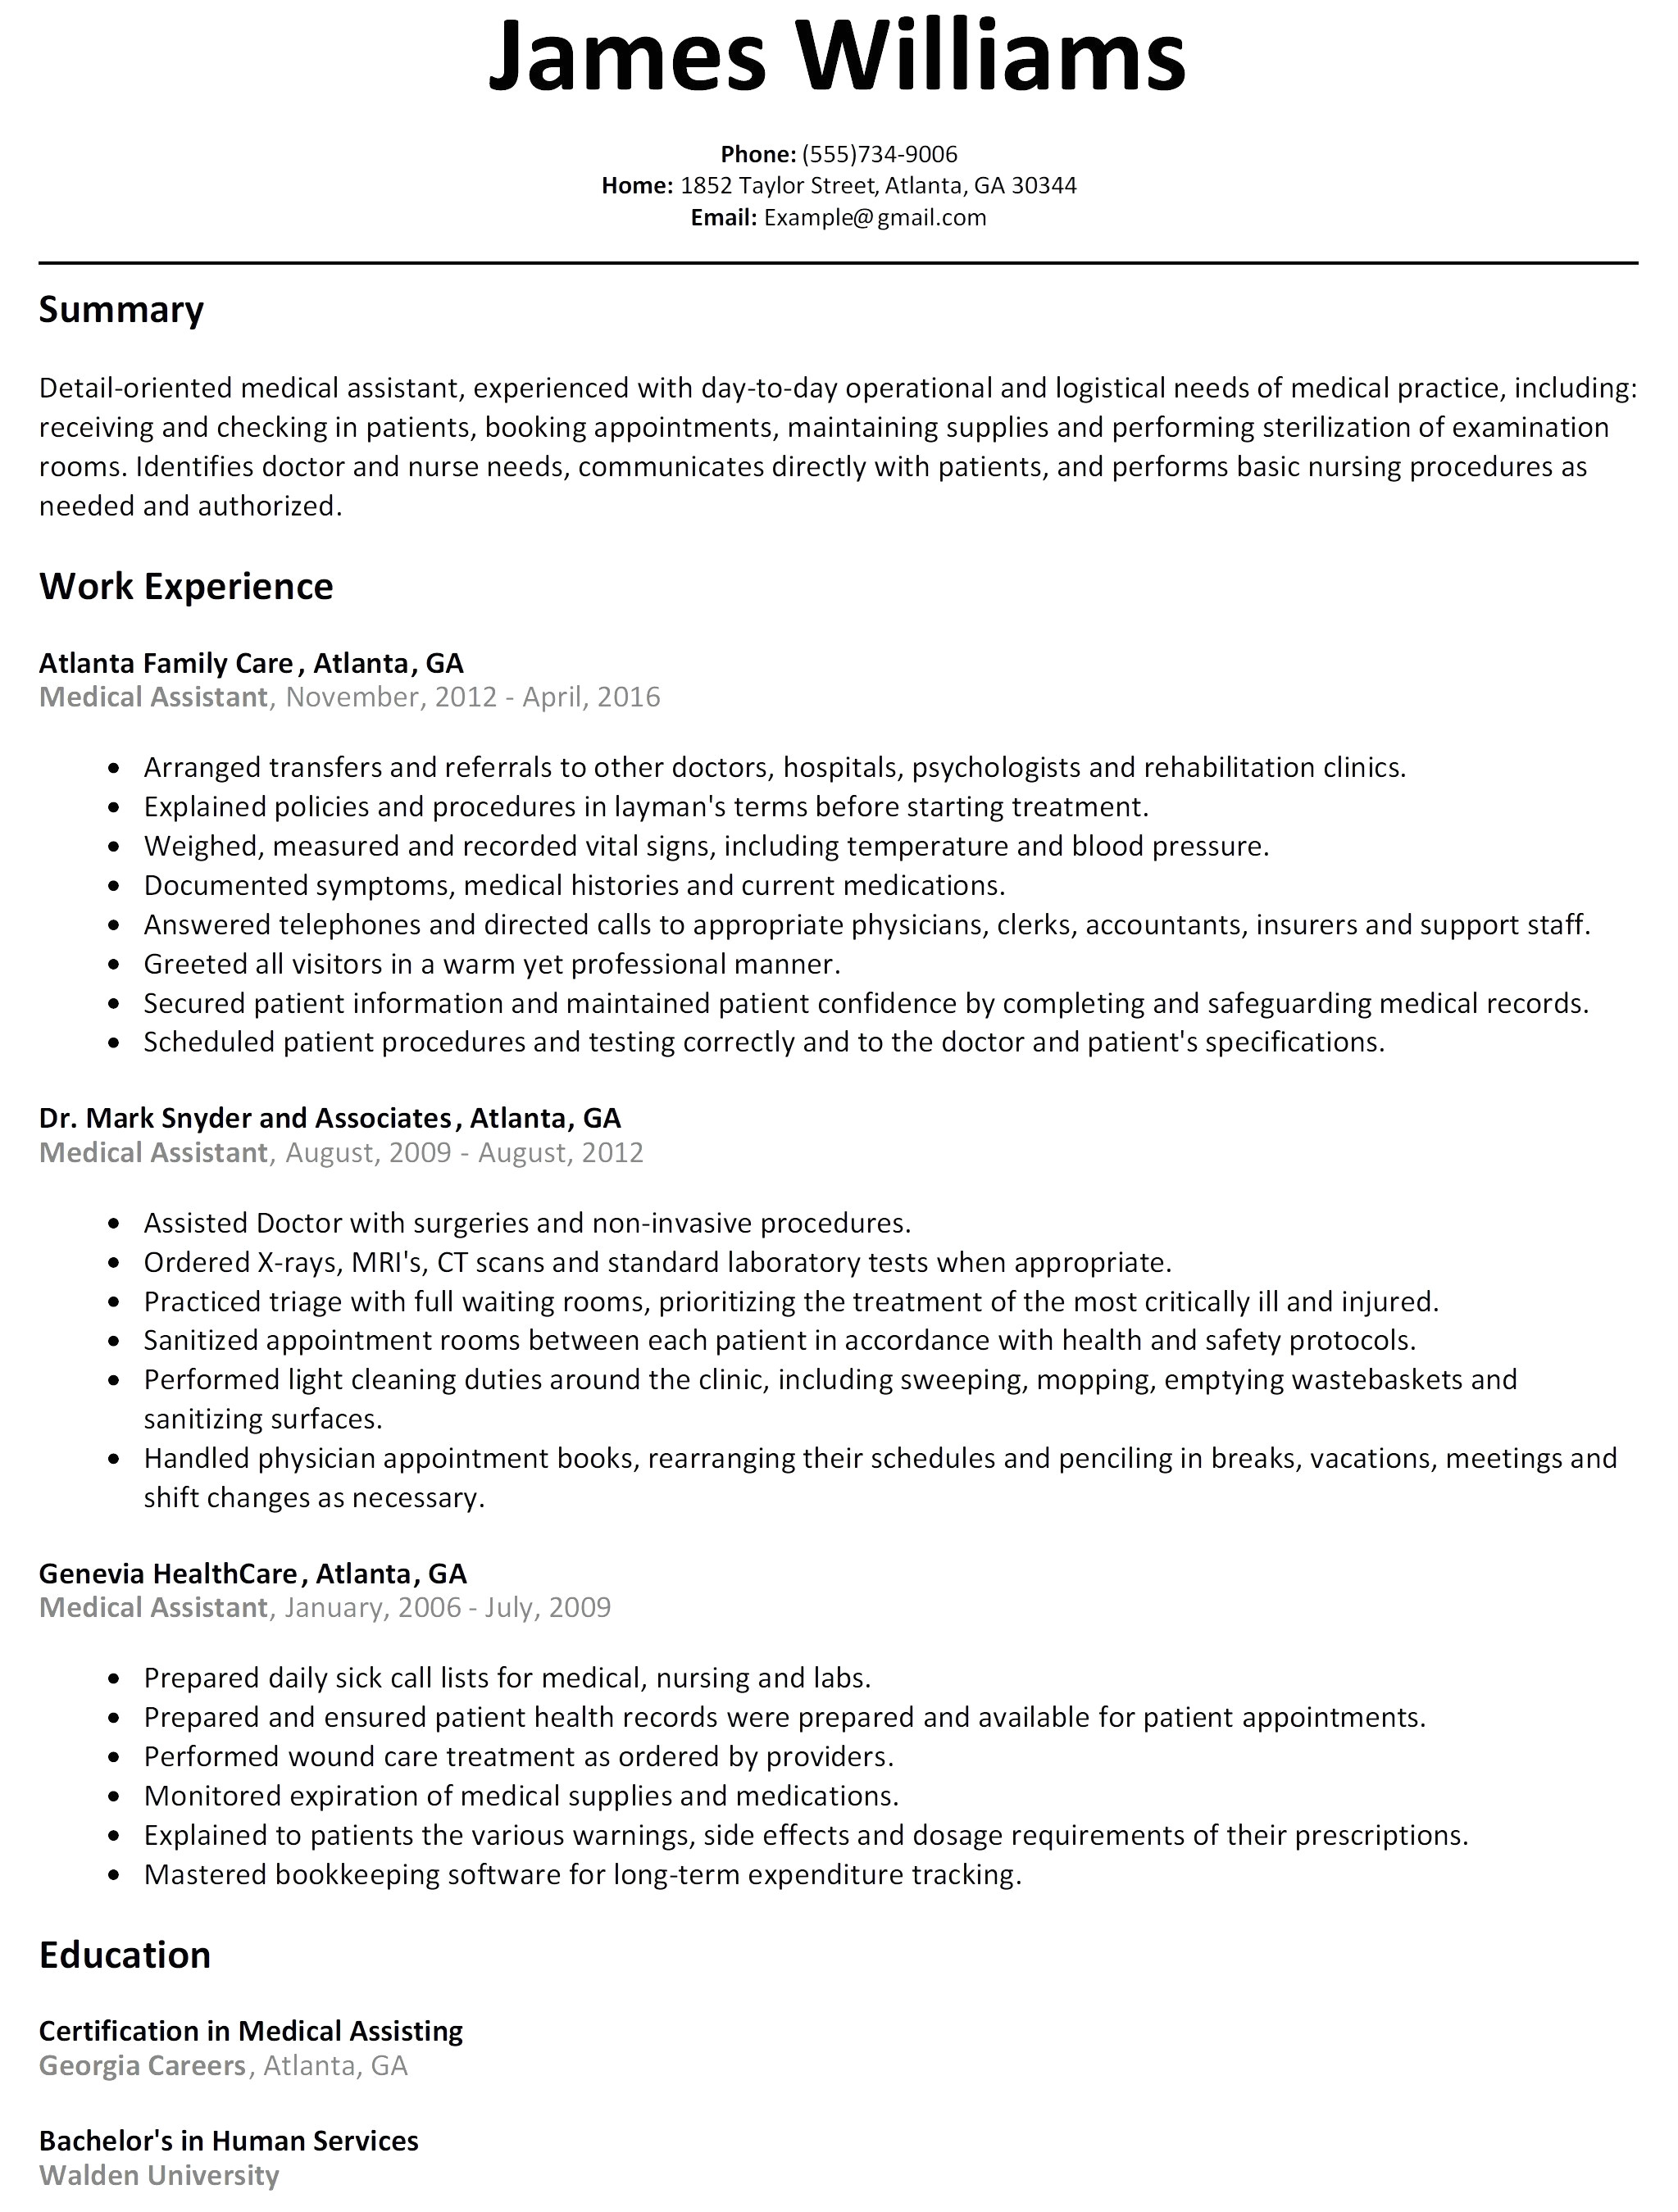 Medical Administrative assistant Resume - 45 Design Medical Administrative assistant Resume